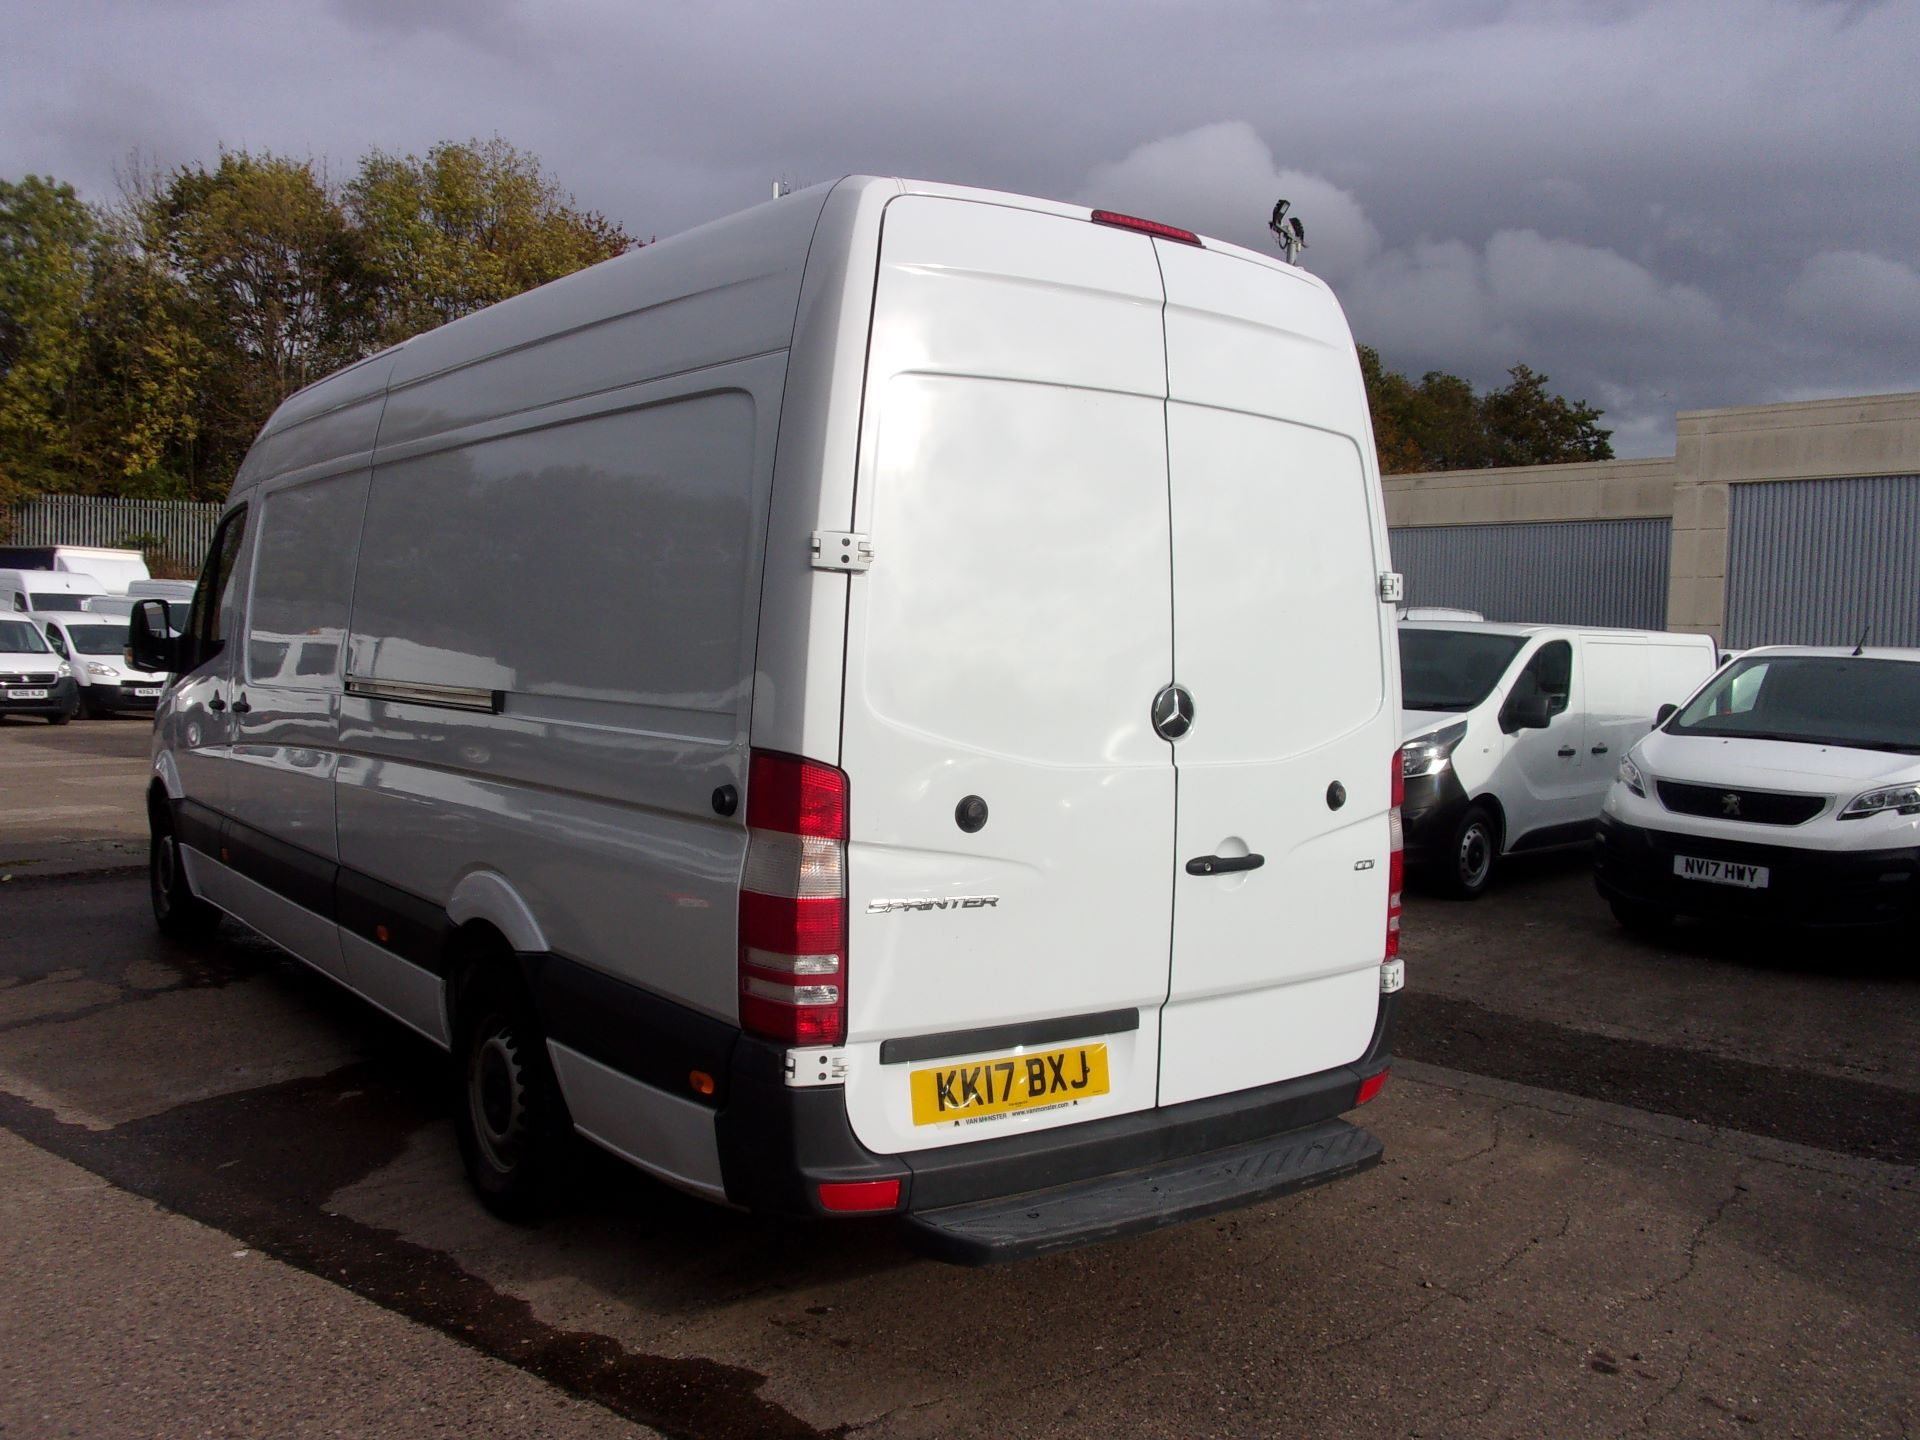 2017 Mercedes-Benz Sprinter 314 CDI LWB HIGH ROOF EURO 6 (KK17BXJ) Image 12